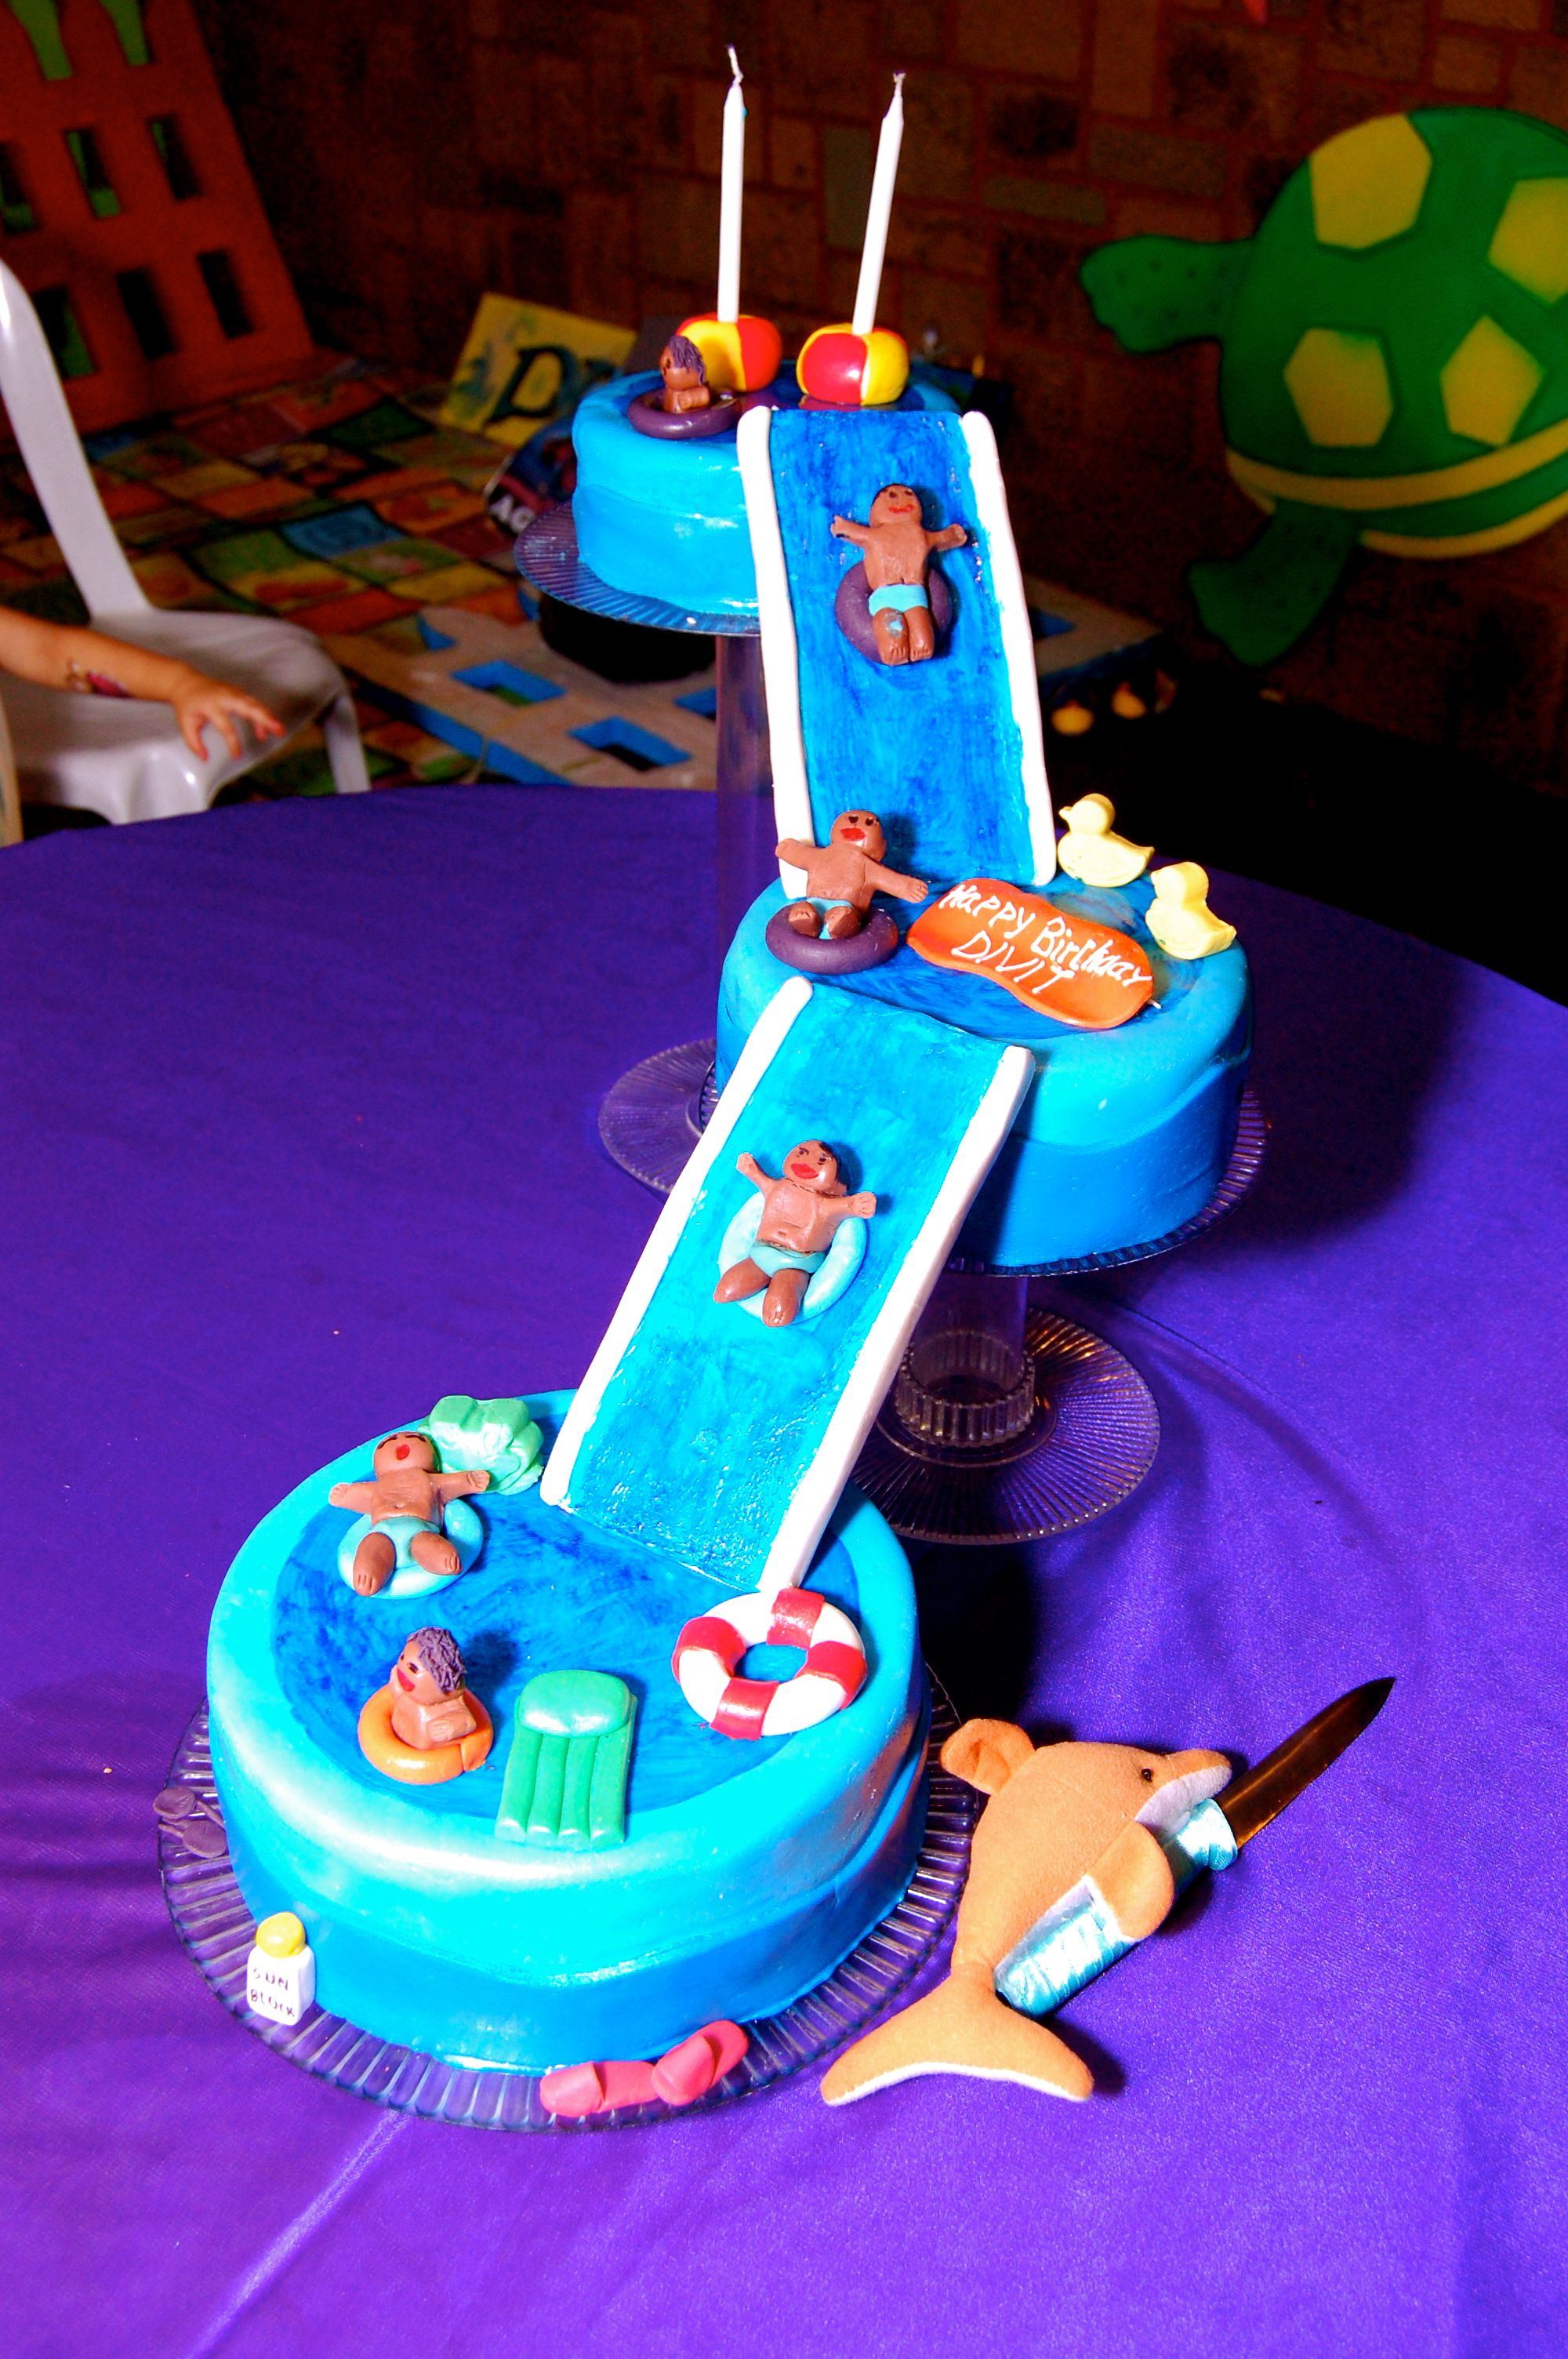 Kids pool party cake party cakes themed cakes cake